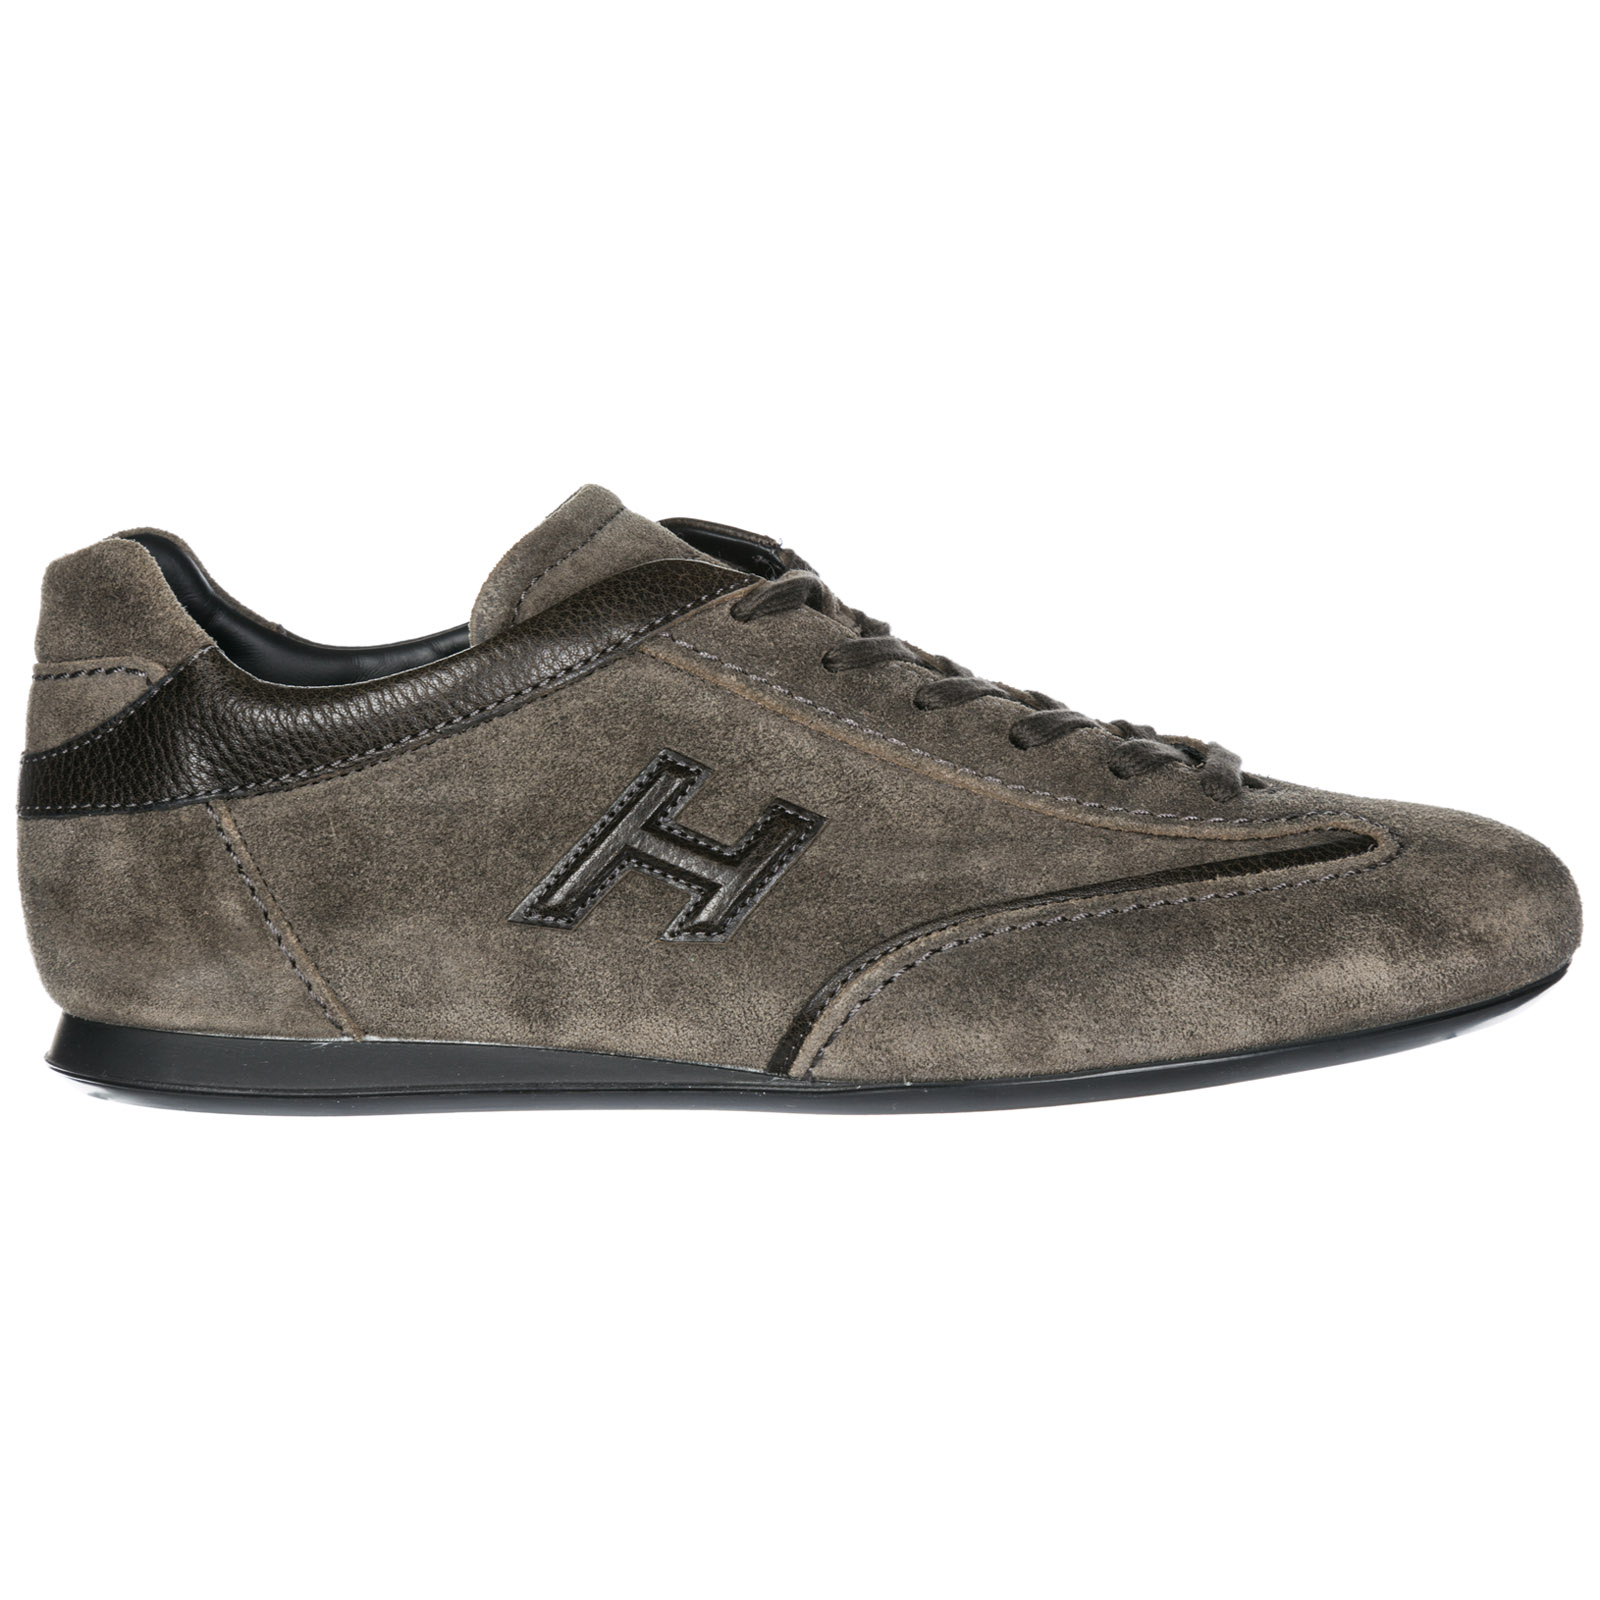 Men's shoes suede trainers sneakers olympia